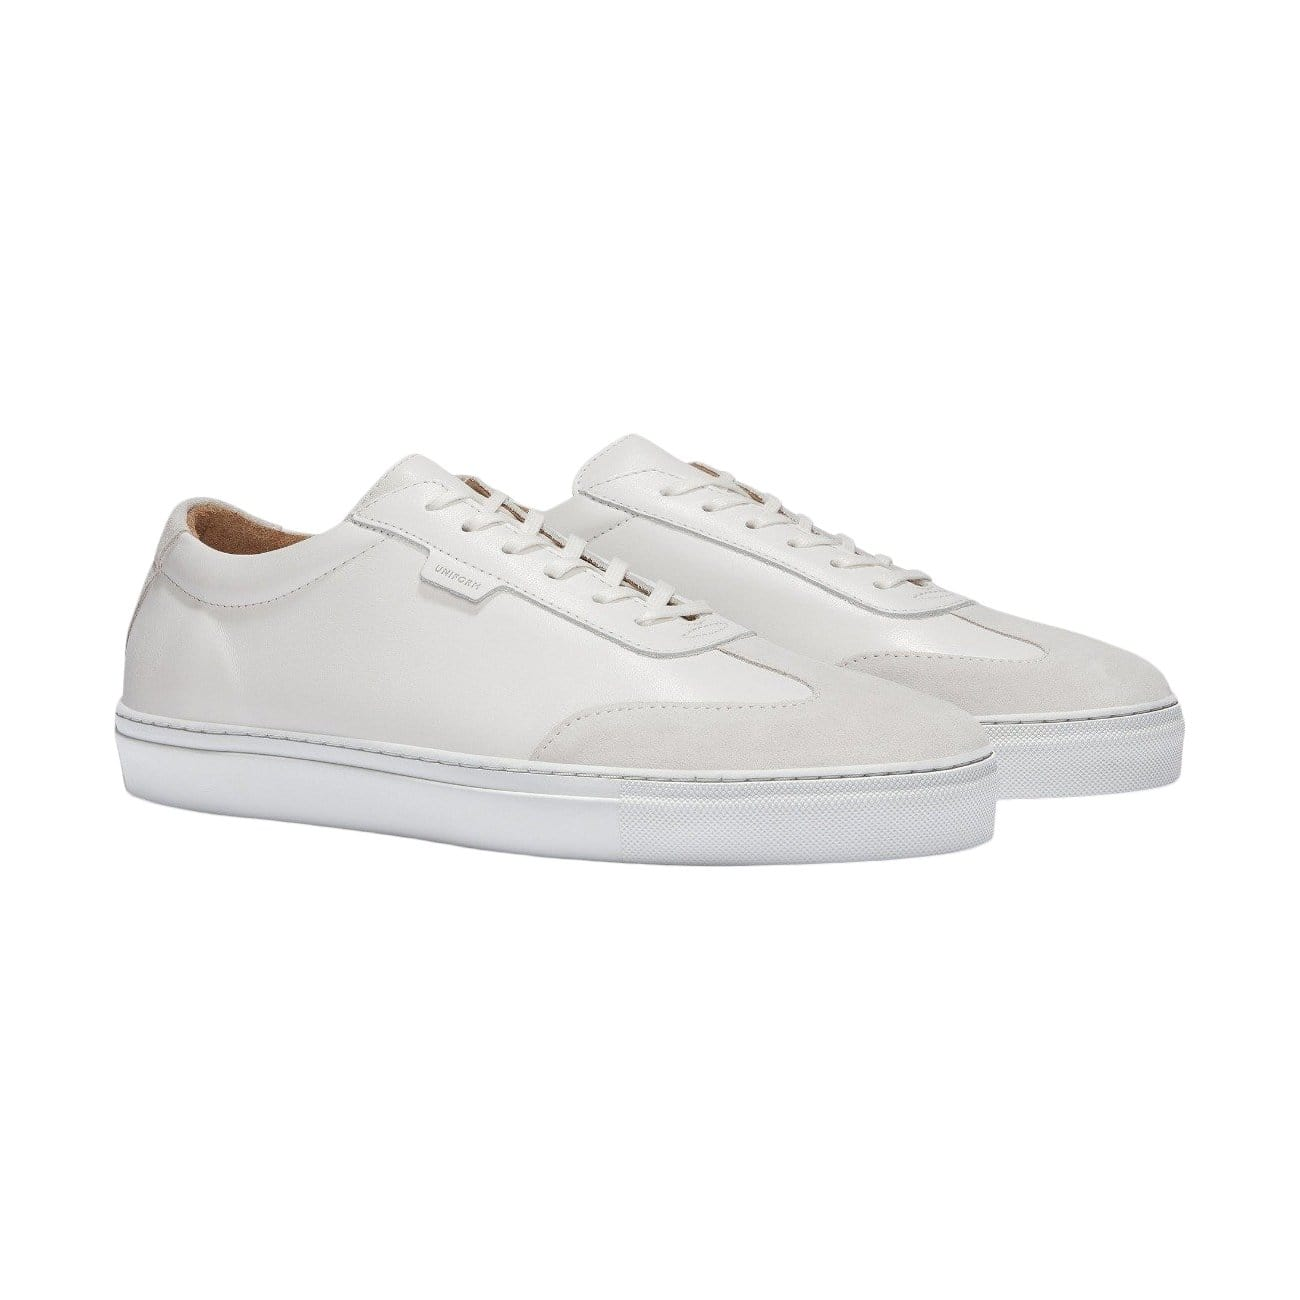 UNIFORM STANDARD SERIES 3 Women's SERIES 3 White Leather Sneaker